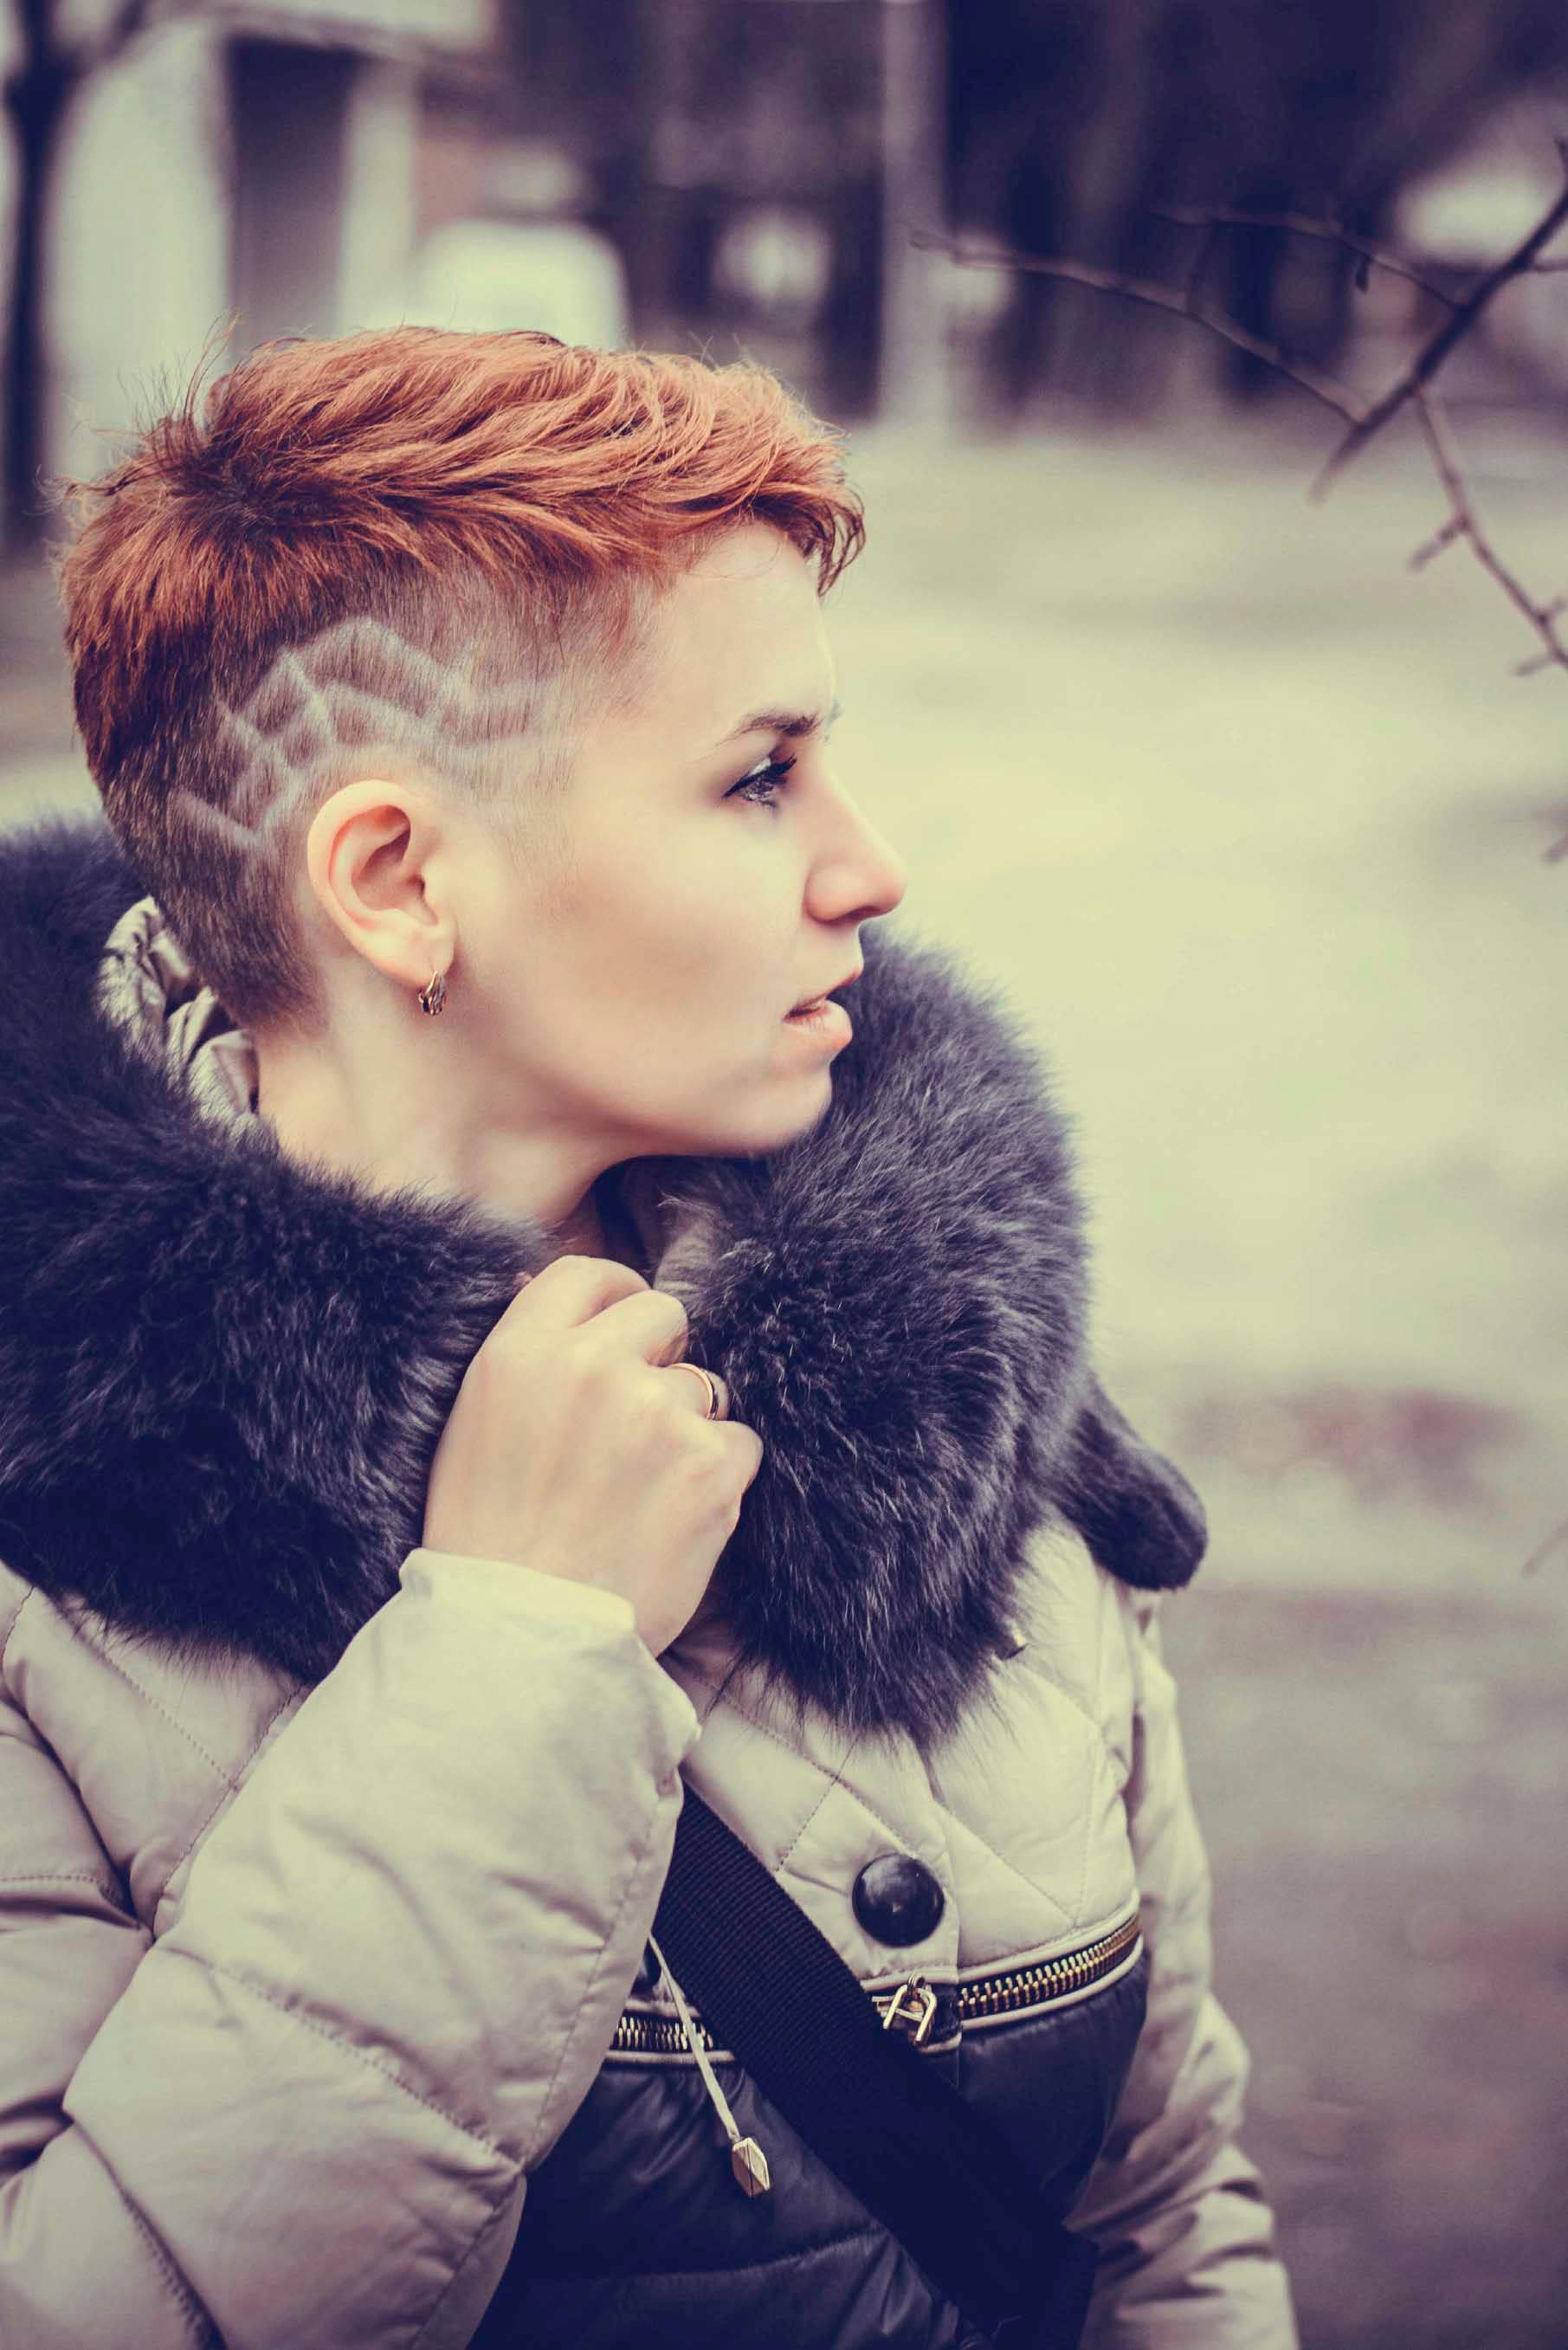 young woman wearing side shaved hair with designs.